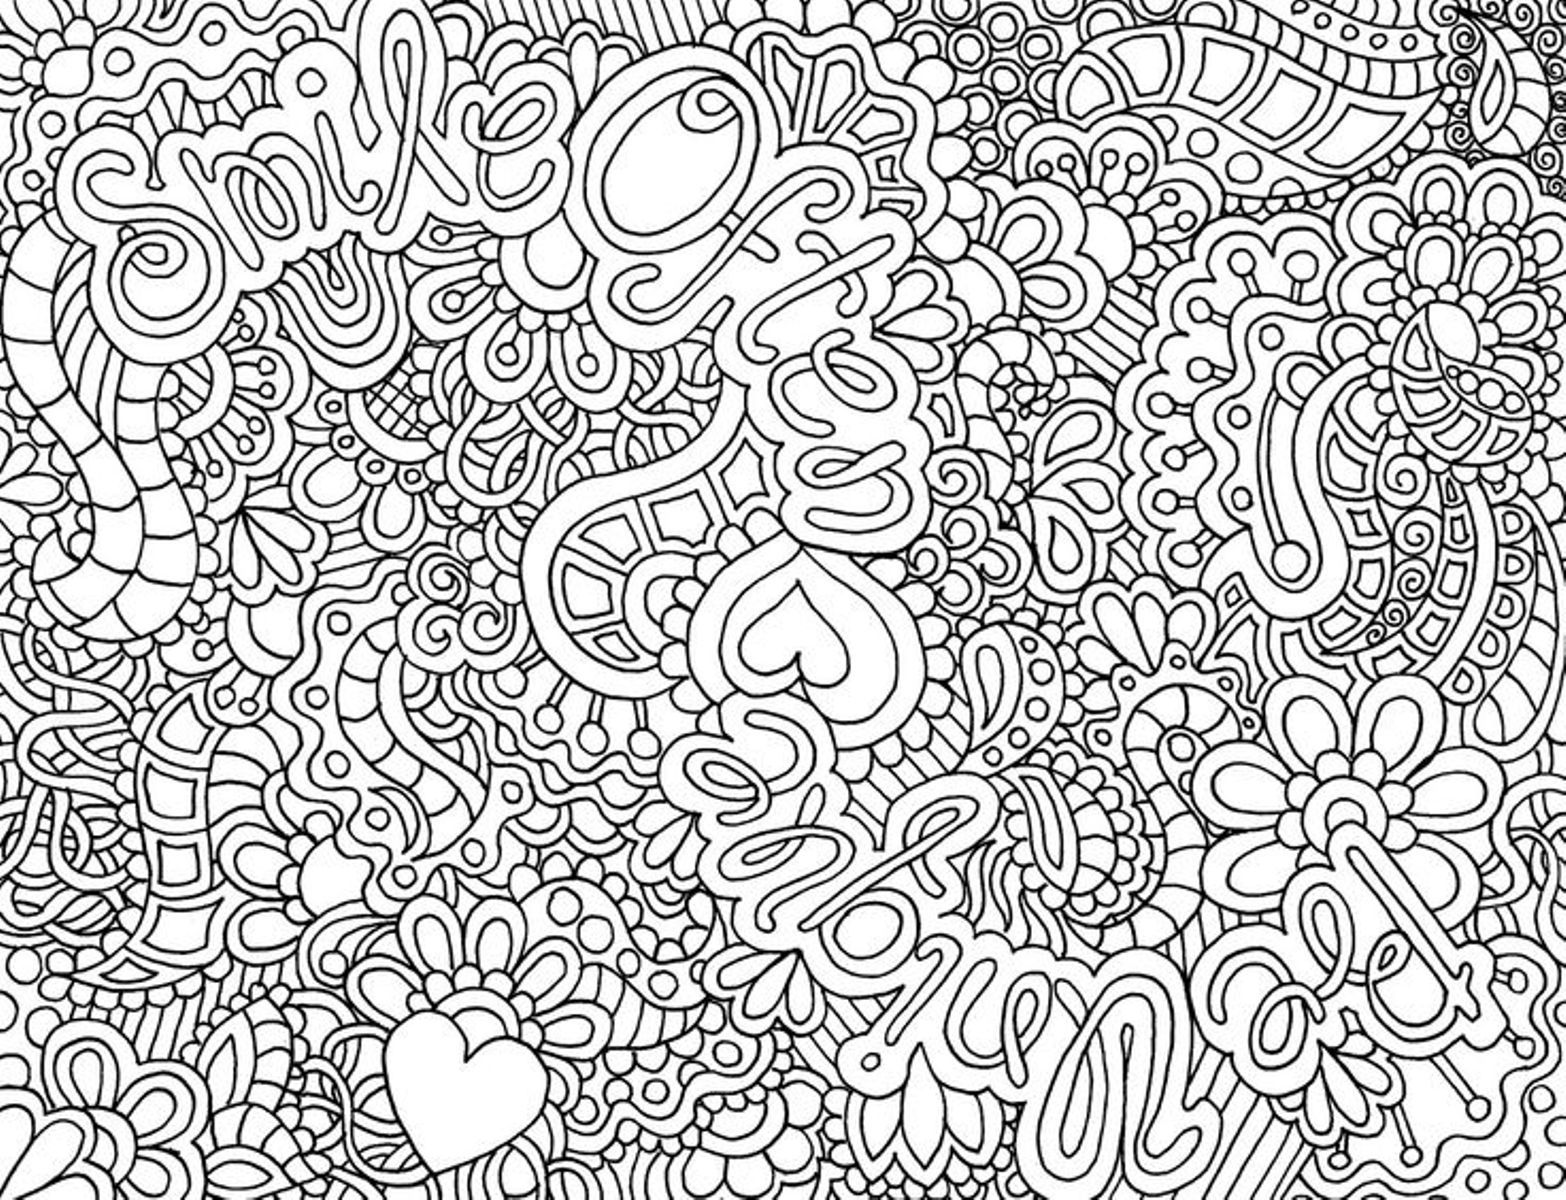 Lotus designs coloring book - Difficult Hard Coloring Pages Printable Free Online Printable Coloring Pages Sheets For Kids Get The Latest Free Difficult Hard Coloring Pages Printable